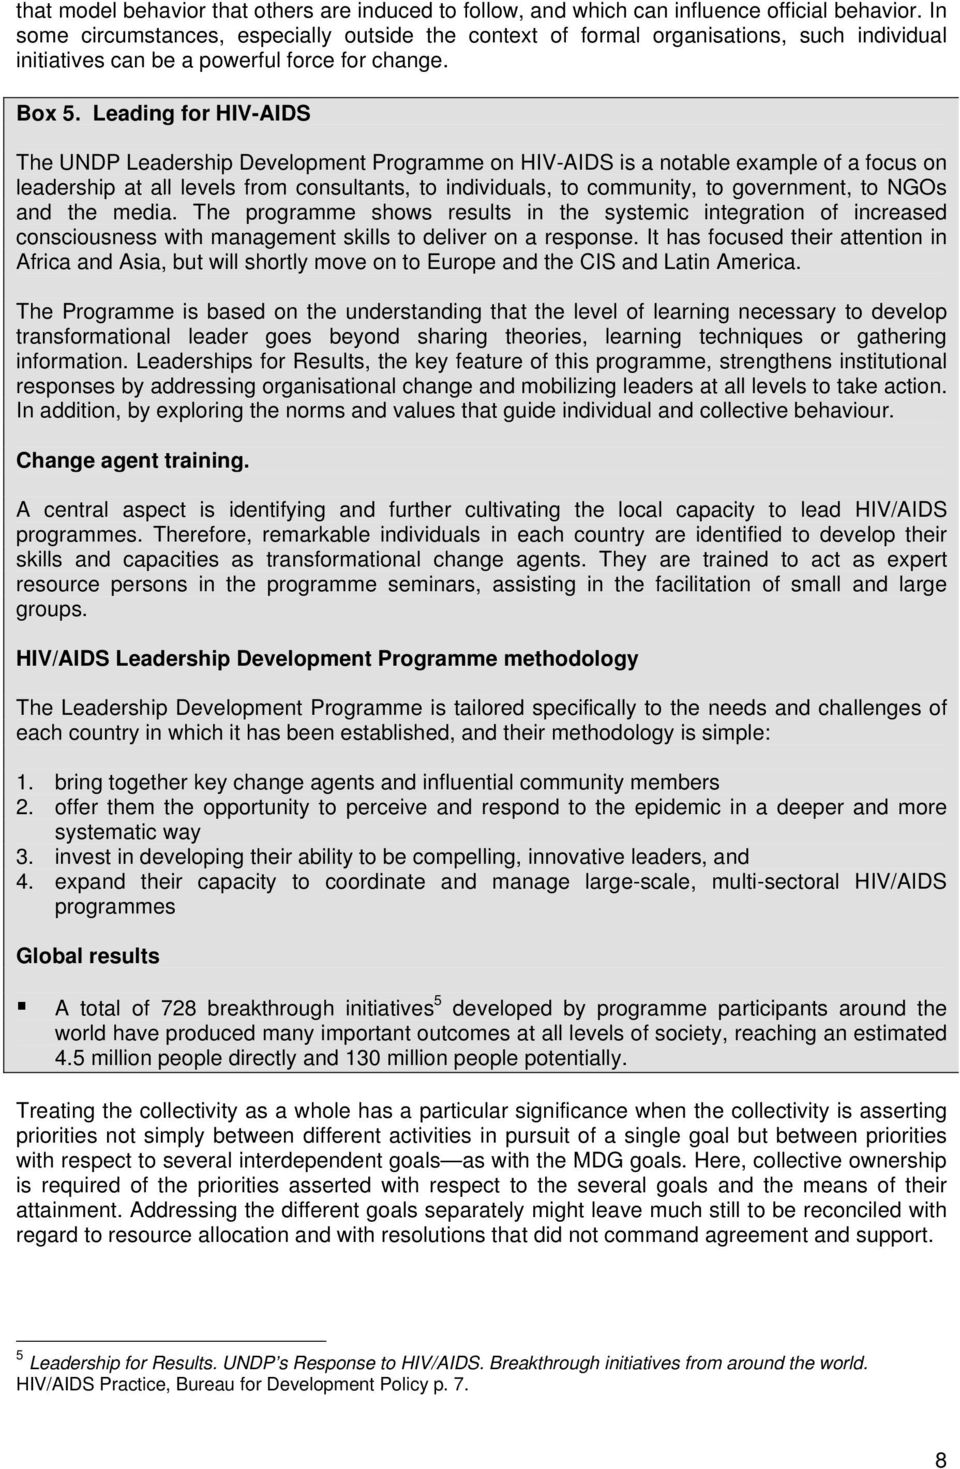 Leading for HIV-AIDS The UNDP Leadership Development Programme on HIV-AIDS is a notable example of a focus on leadership at all levels from consultants, to individuals, to community, to government,